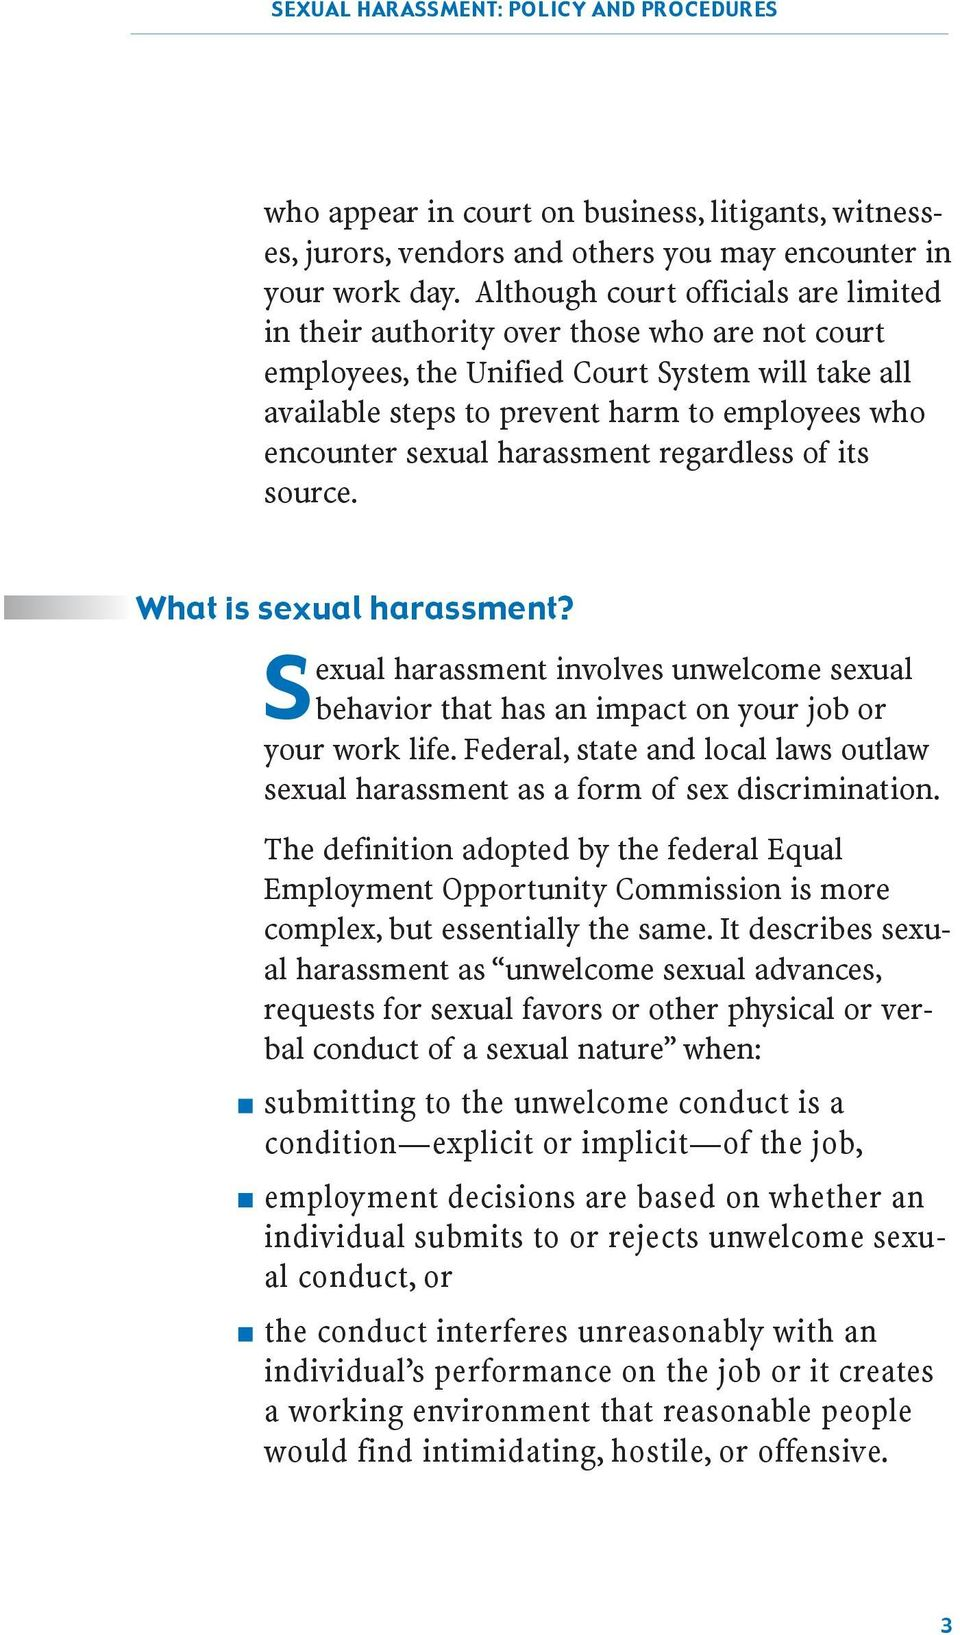 sexual harassment regardless of its source. What is sexual harassment? Sexual harassment involves unwelcome sexual behavior that has an impact on your job or your work life.